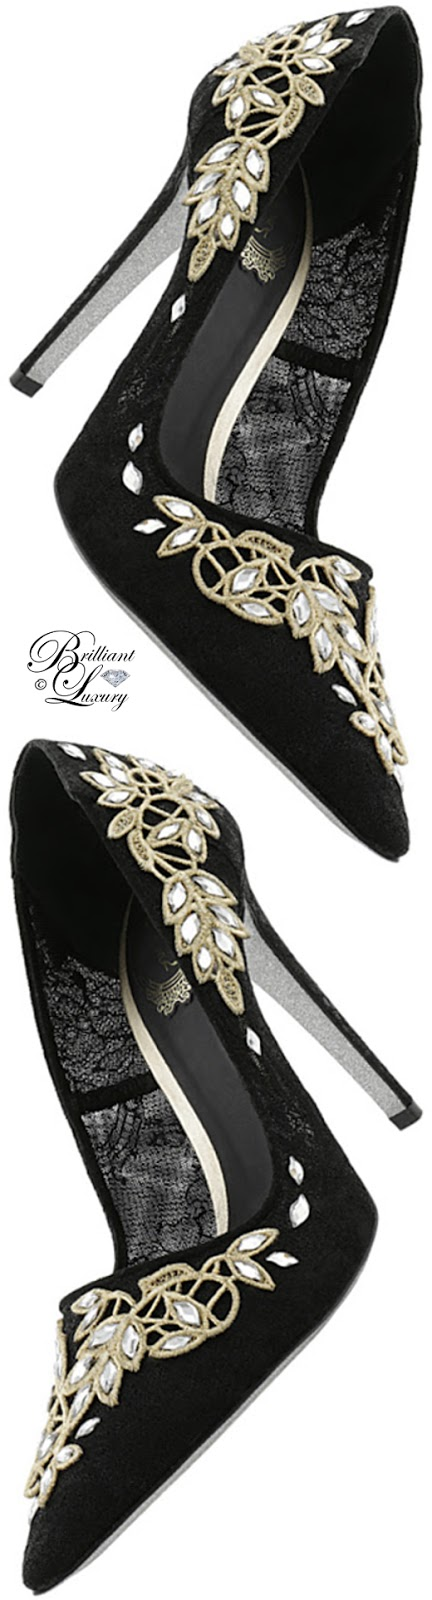 Brilliant Luxury ♦ Rene Caovilla embroidered high heels